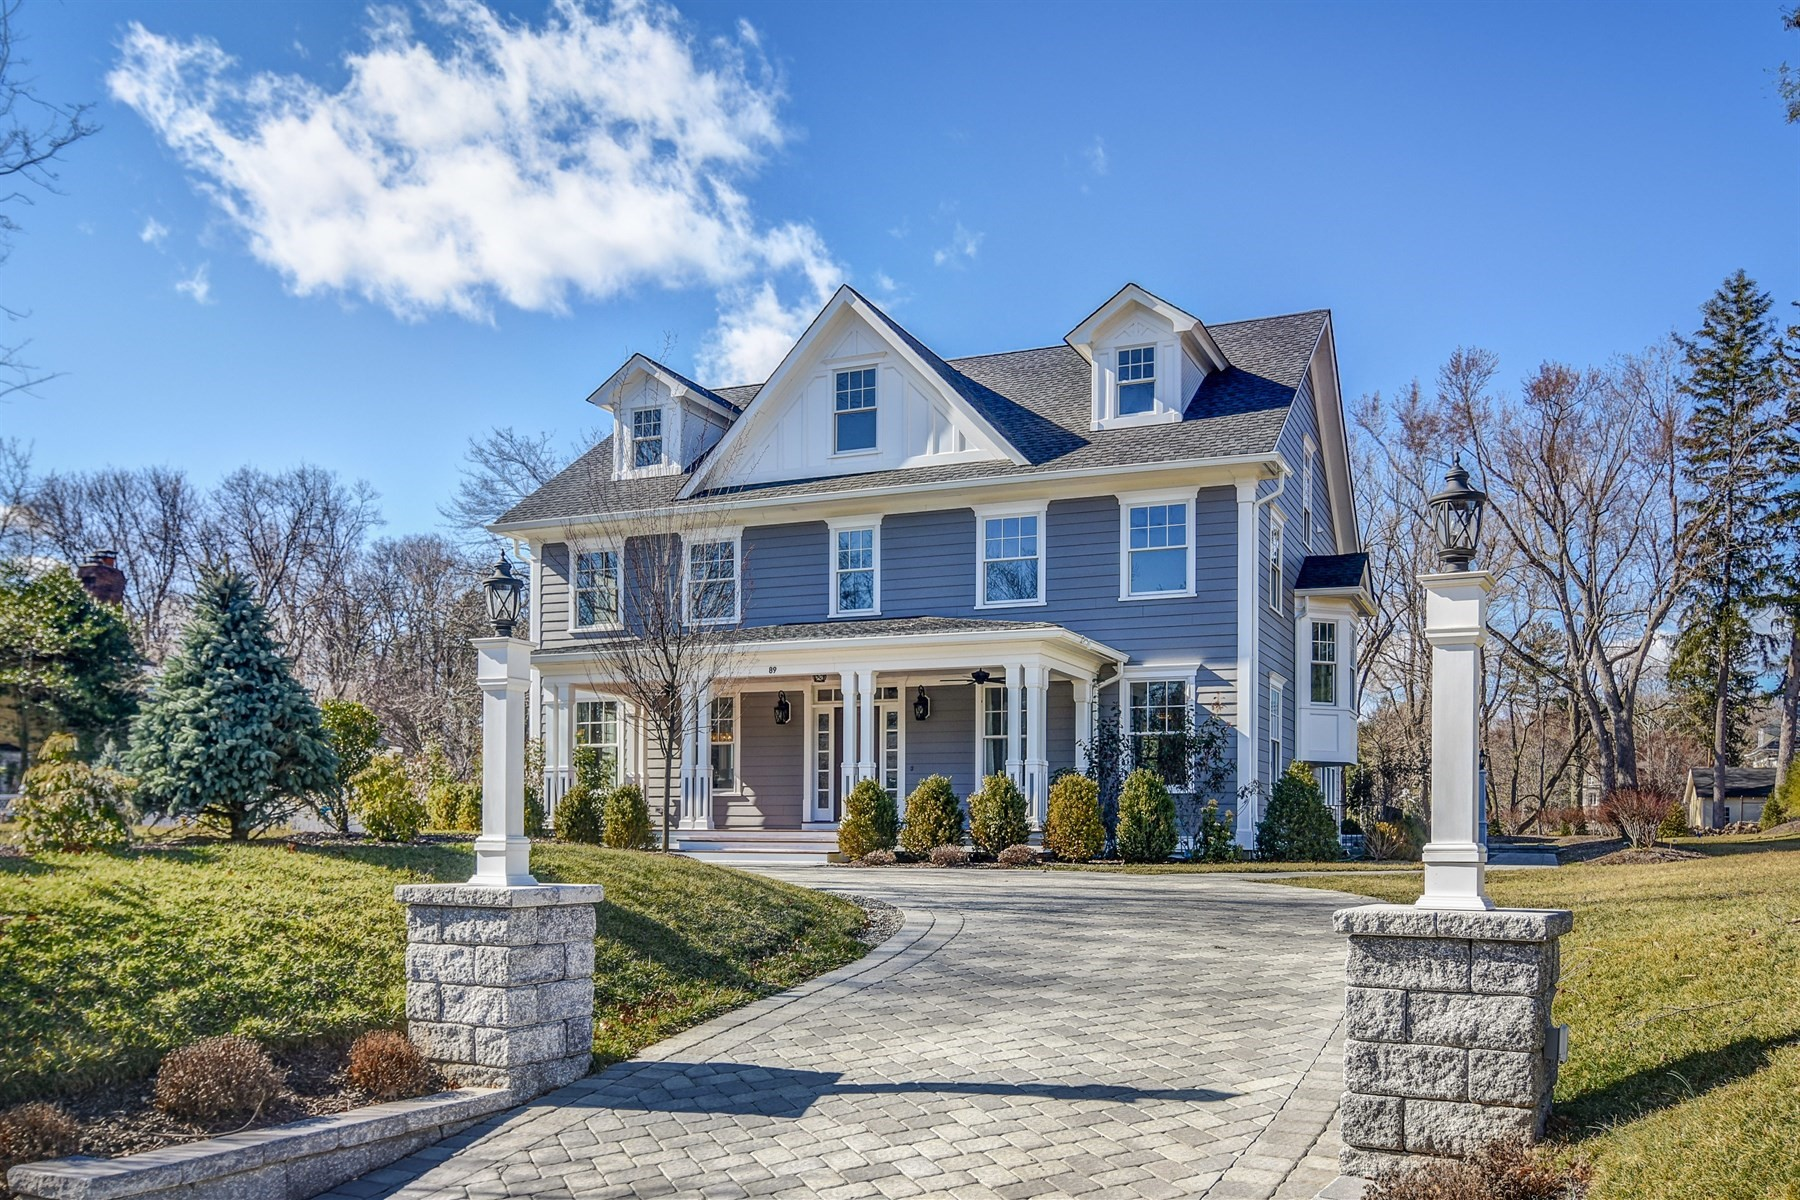 Single Family Home for Sale at Gracious Living on the Hill 89 Green Avenue Madison, New Jersey 07940 United States